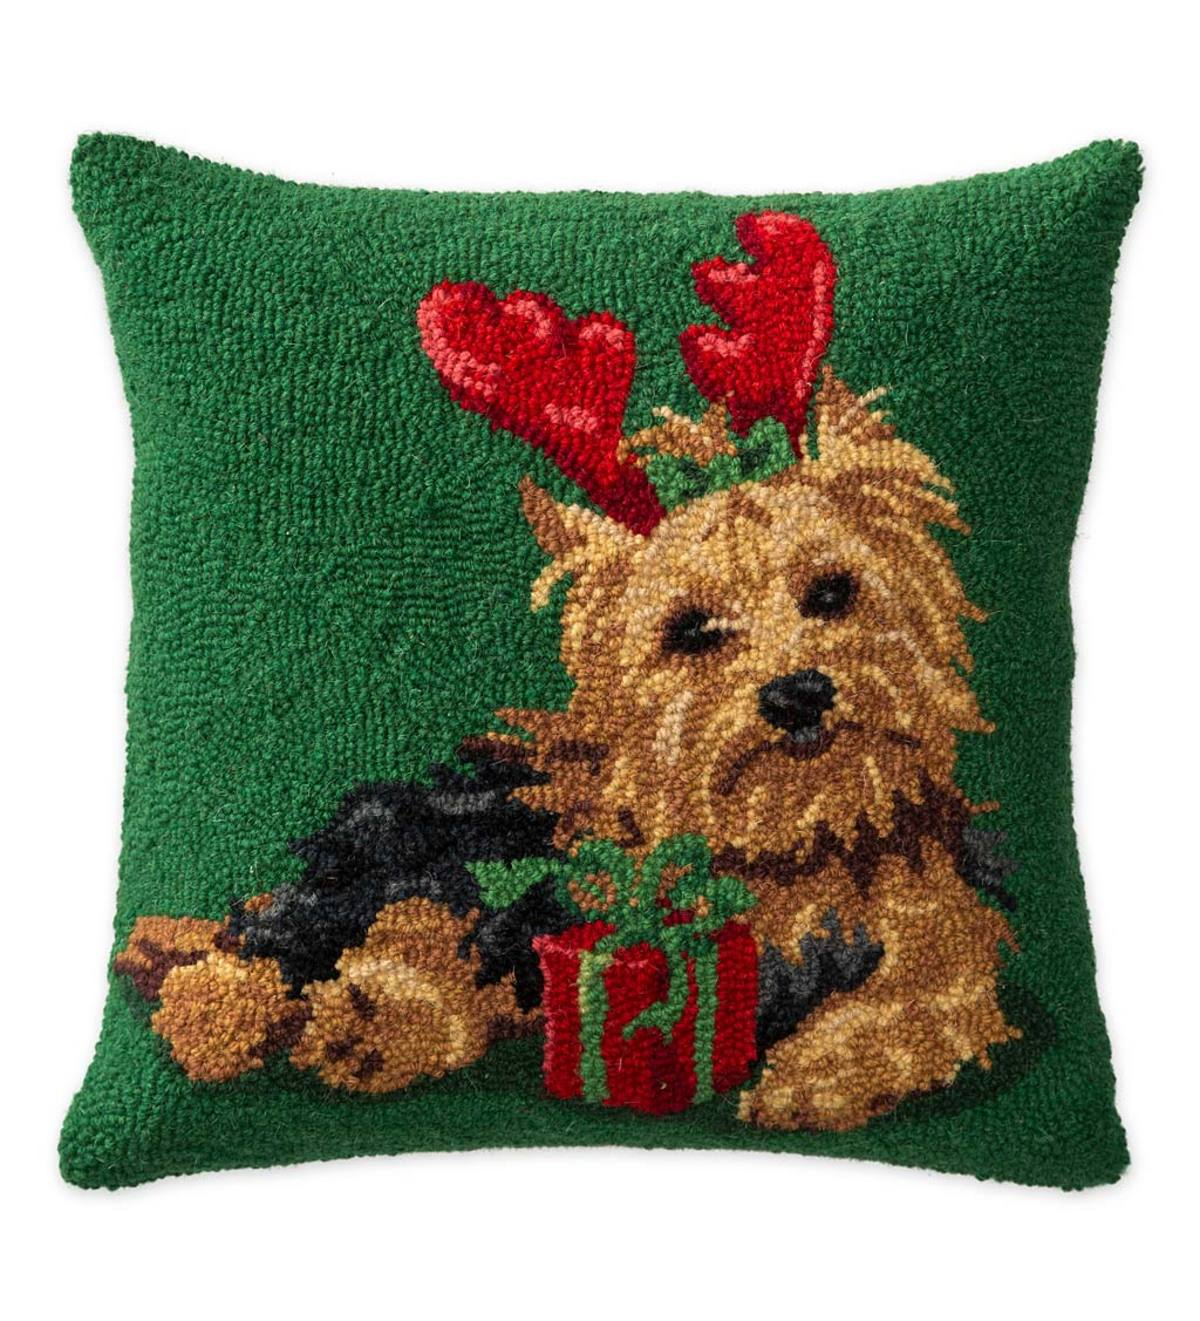 Hooked Wool Yorkshire Terrier With Christmas Present Holiday Throw Pillow Plowhearth